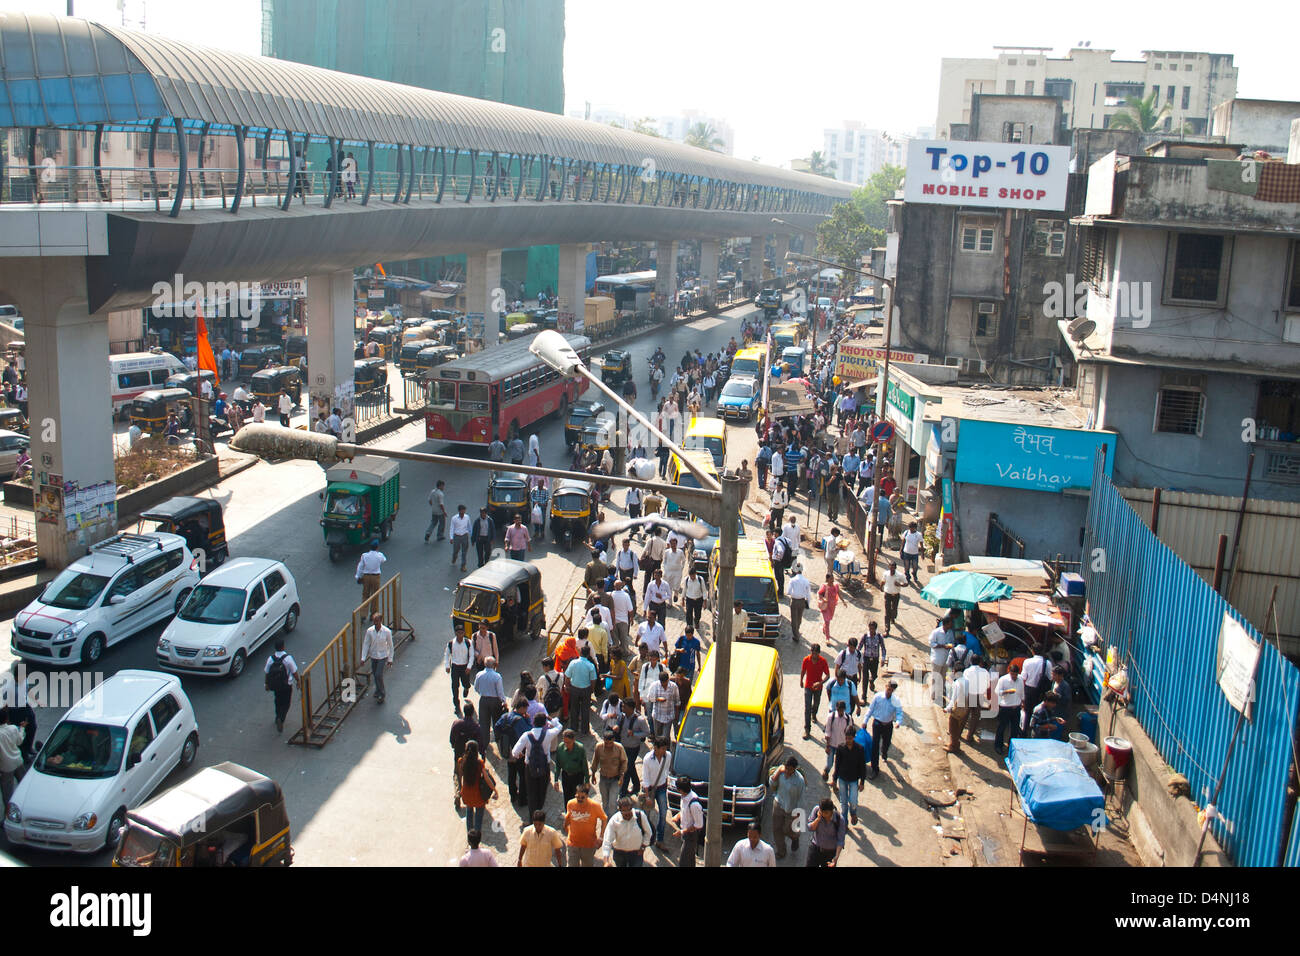 Birds eye view of a busy street in Andheri, Mumbai, India - Stock Image